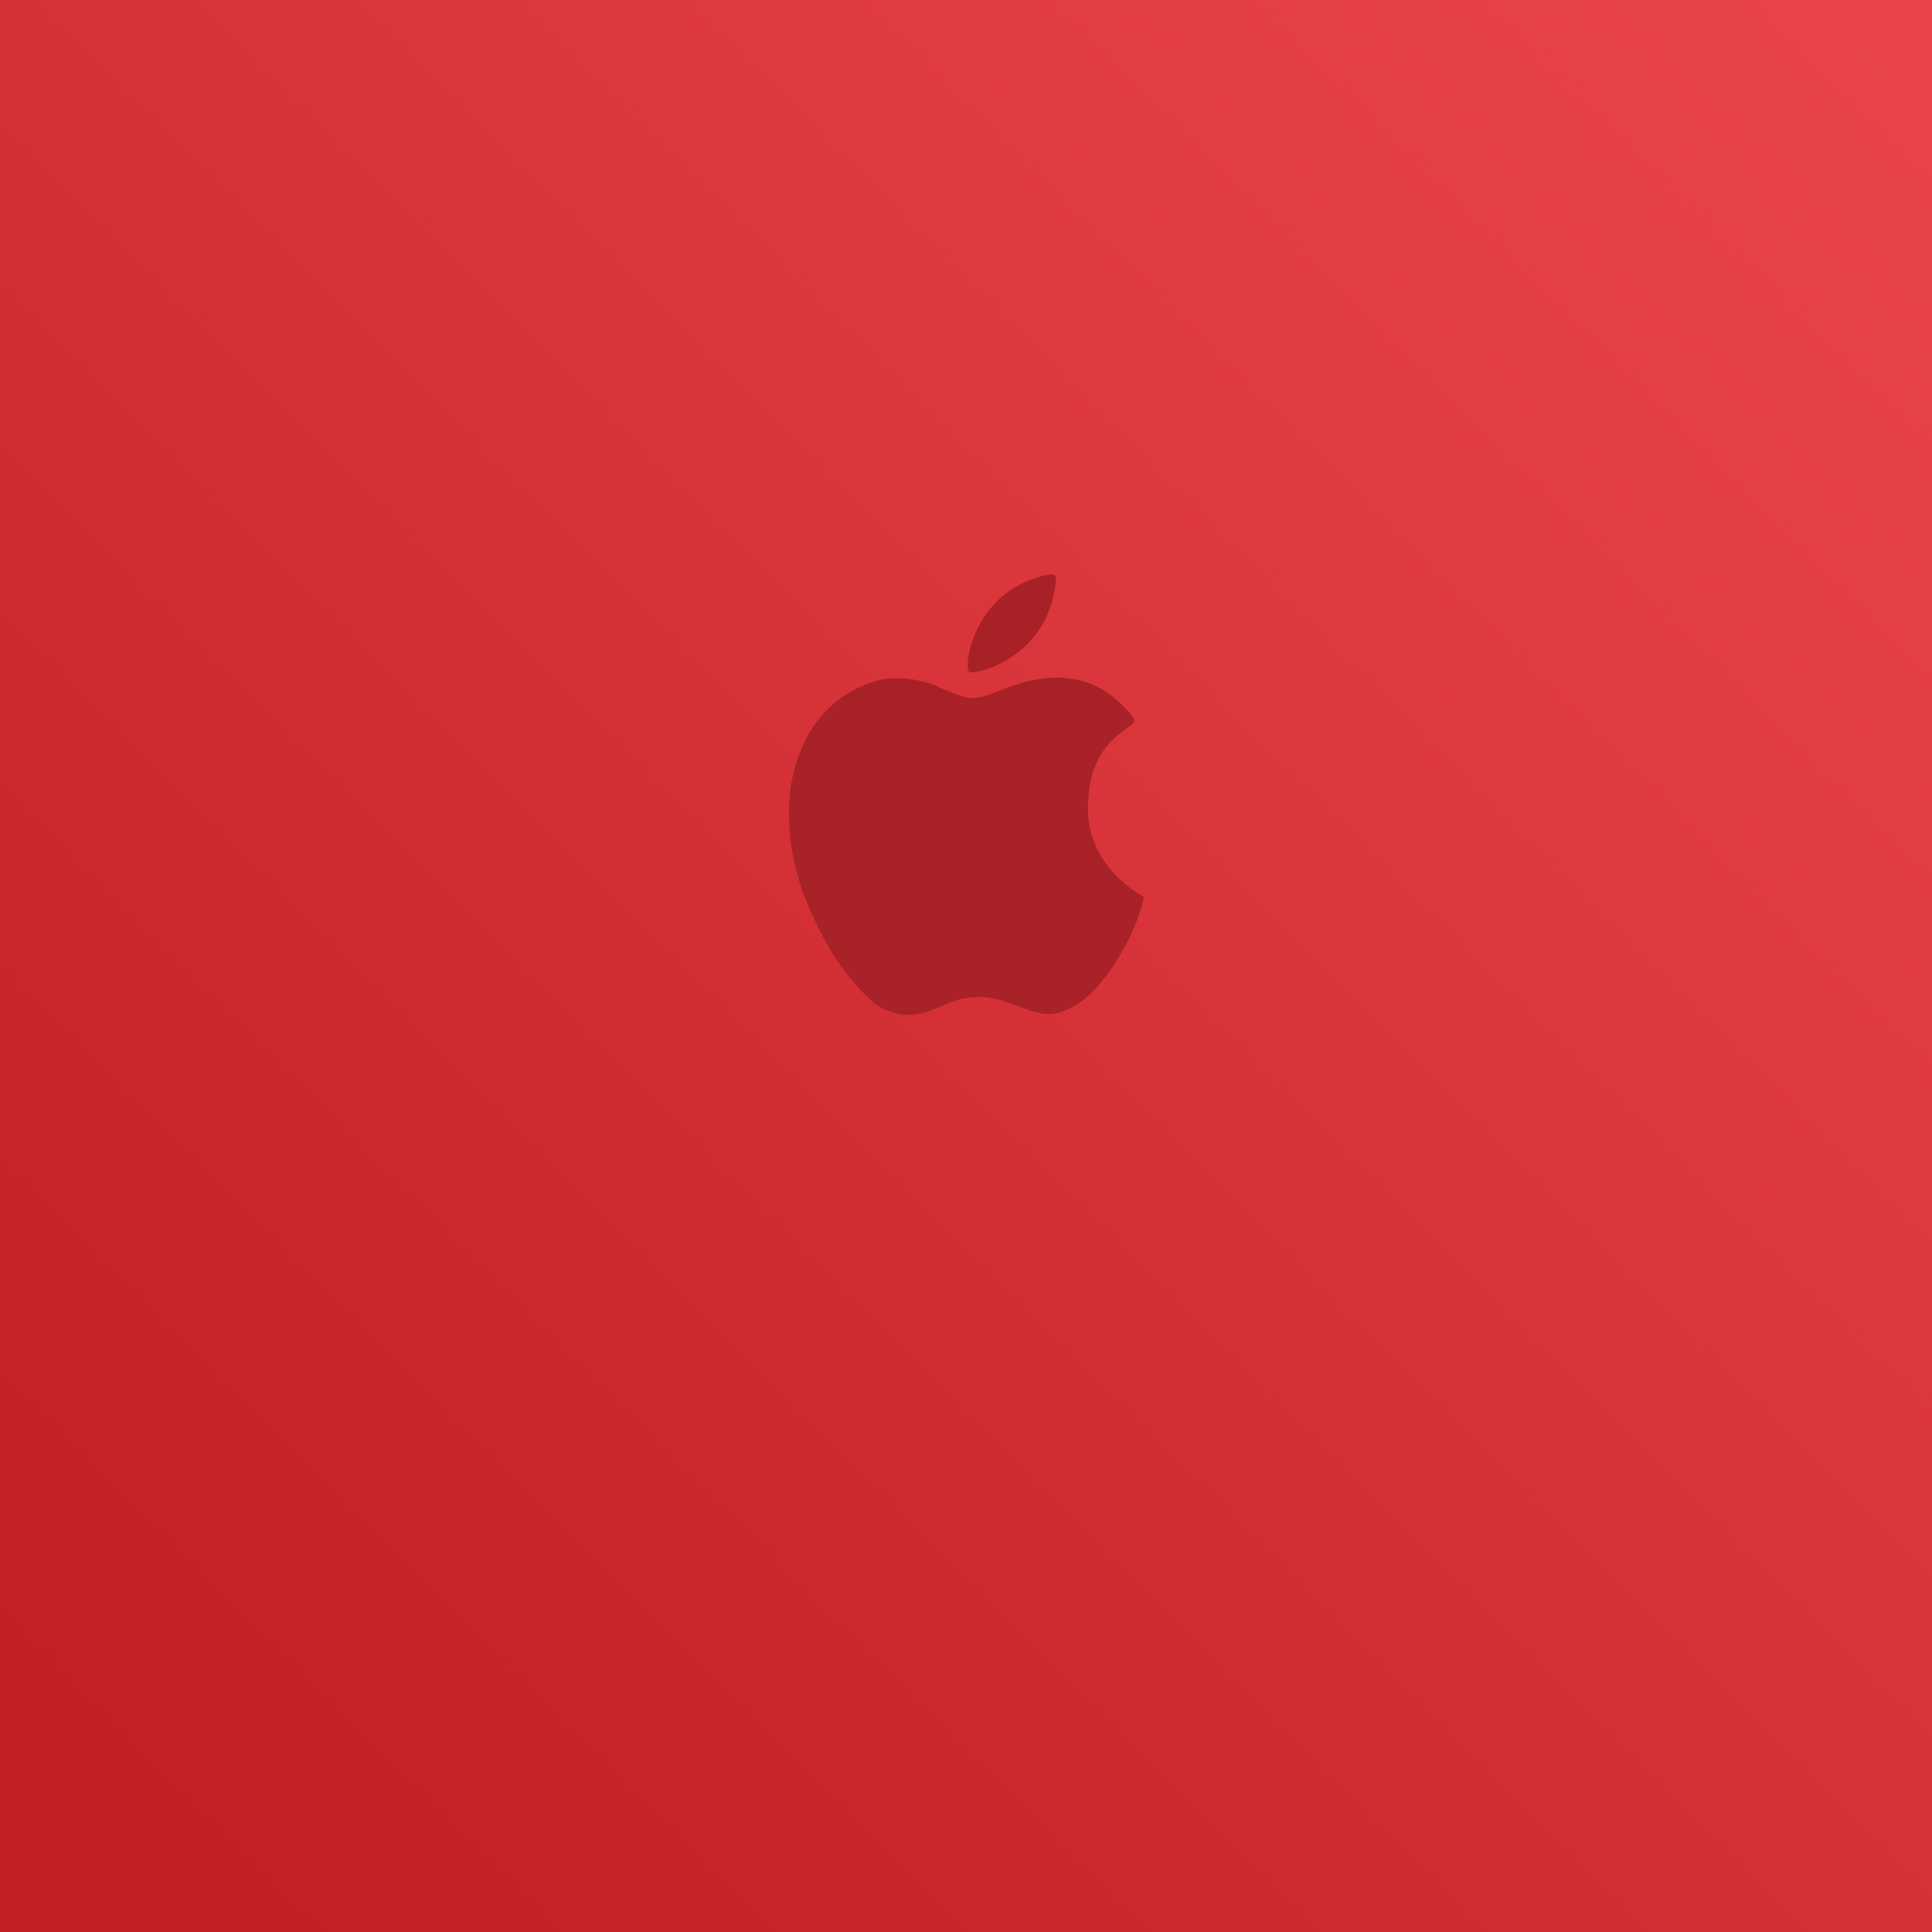 RED WALLPAPER IPHONE X